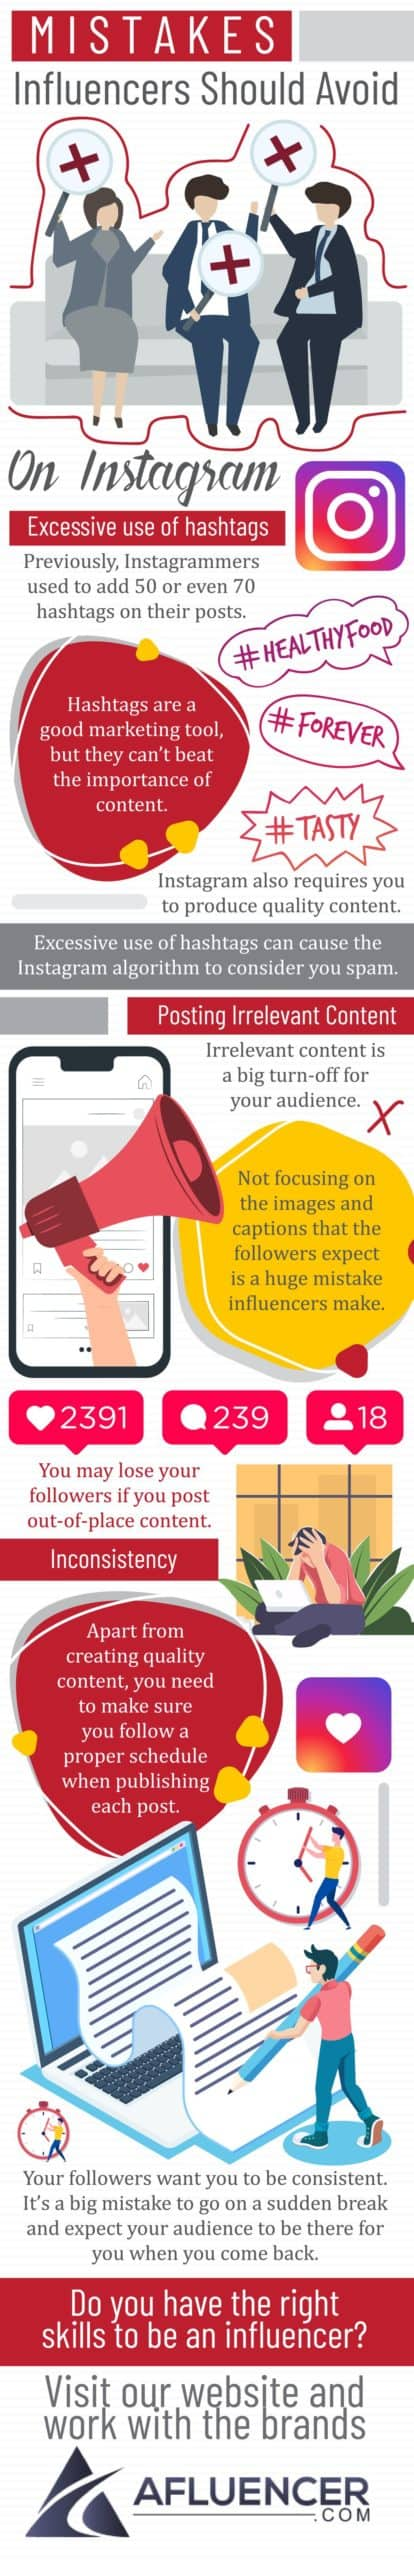 Mistakes Influencers Should Avoid On Instagram | Afluencer Infographic